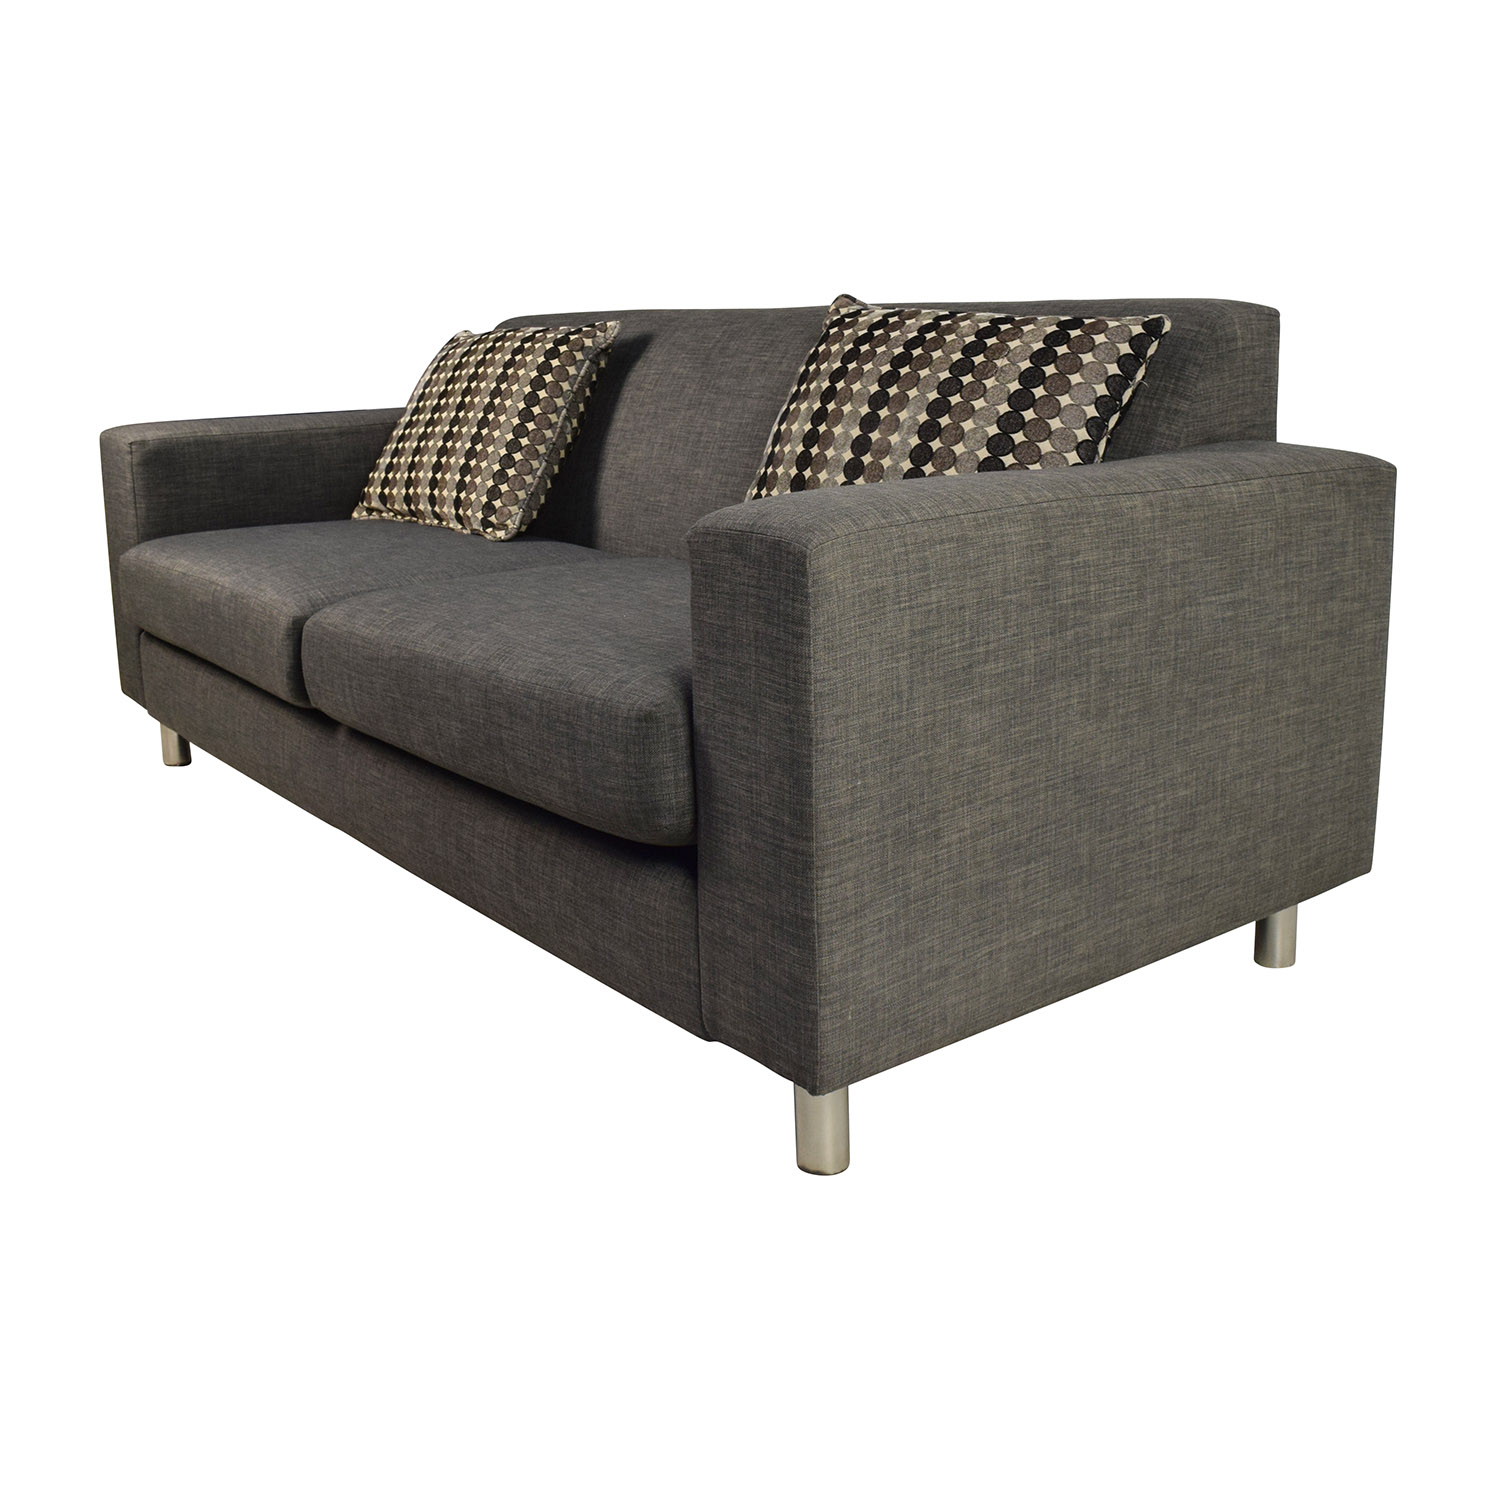 53 off cort cort pia sofa with 2 toss pillows sofas for Toss pillows for sofa